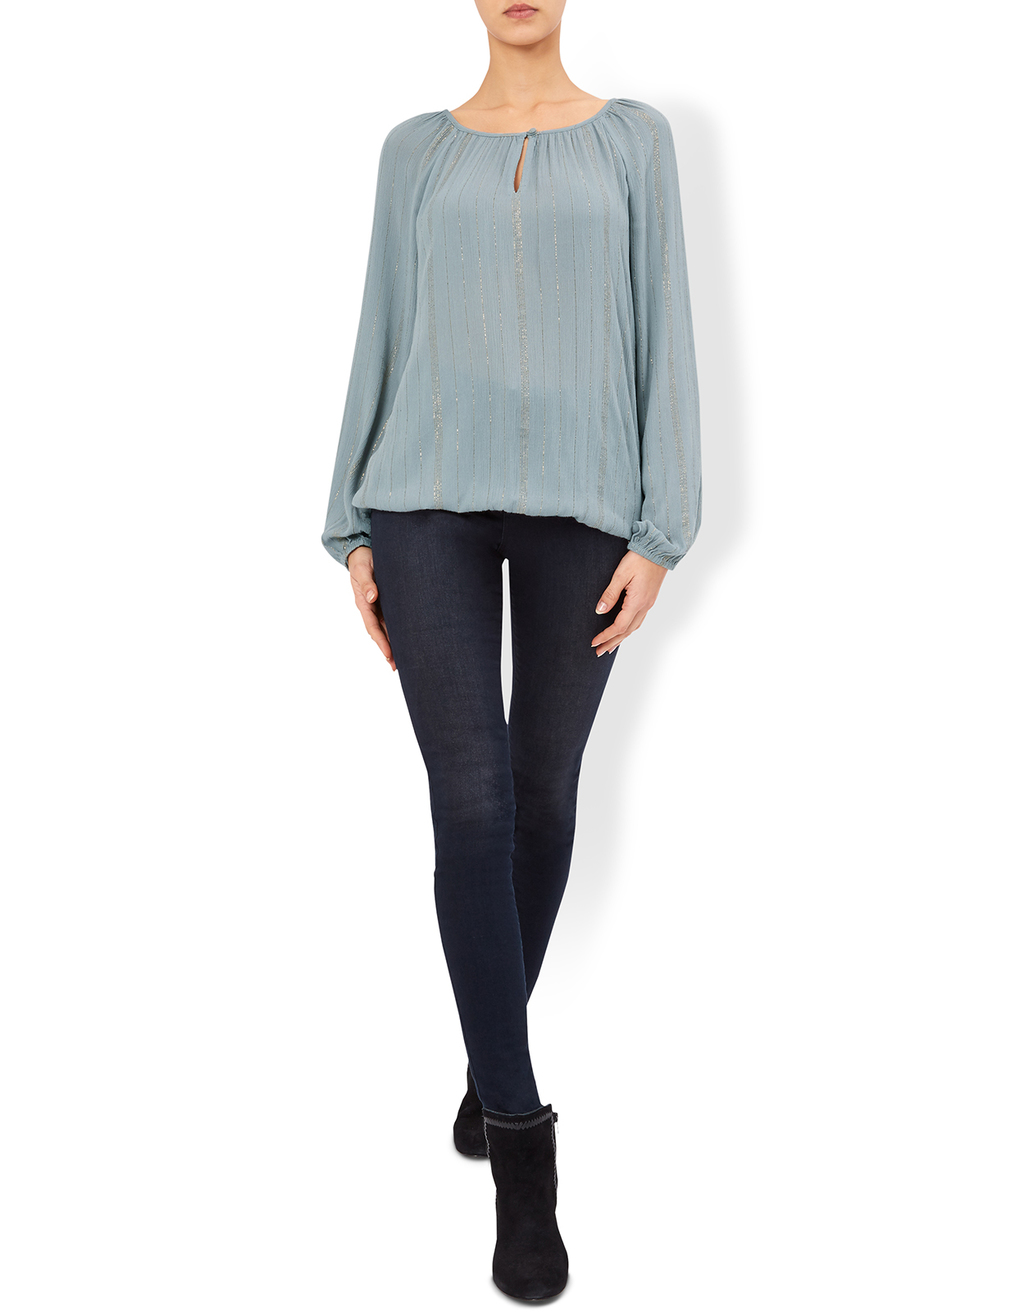 Remy Long Sleeve Blouse - pattern: plain; sleeve style: balloon; style: blouse; predominant colour: pale blue; occasions: evening, work, occasion; length: standard; neckline: peep hole neckline; fibres: polyester/polyamide - 100%; fit: loose; sleeve length: long sleeve; texture group: sheer fabrics/chiffon/organza etc.; pattern type: fabric; season: a/w 2016; wardrobe: highlight